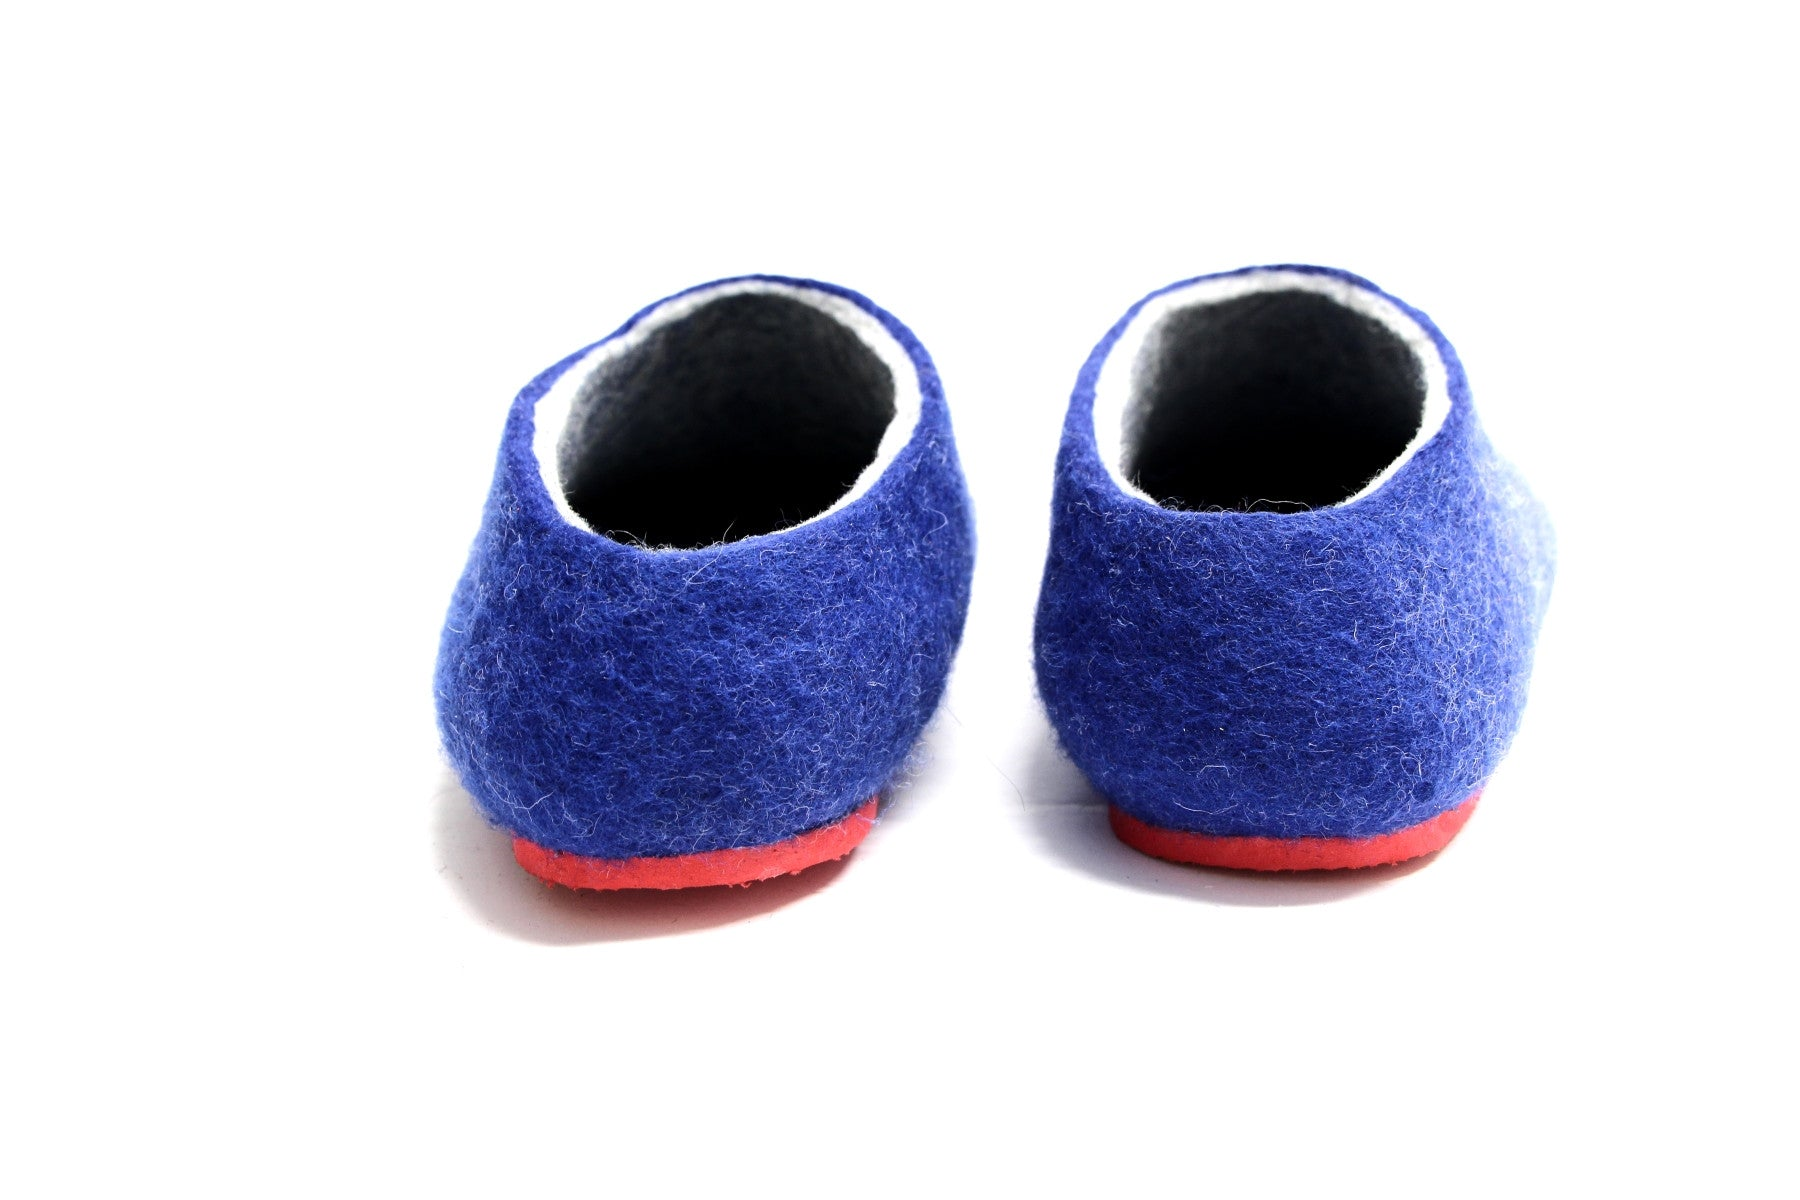 abd22febe9b Womens Felted Slippers Nautical with Colour Sole - Wool Walker - 2